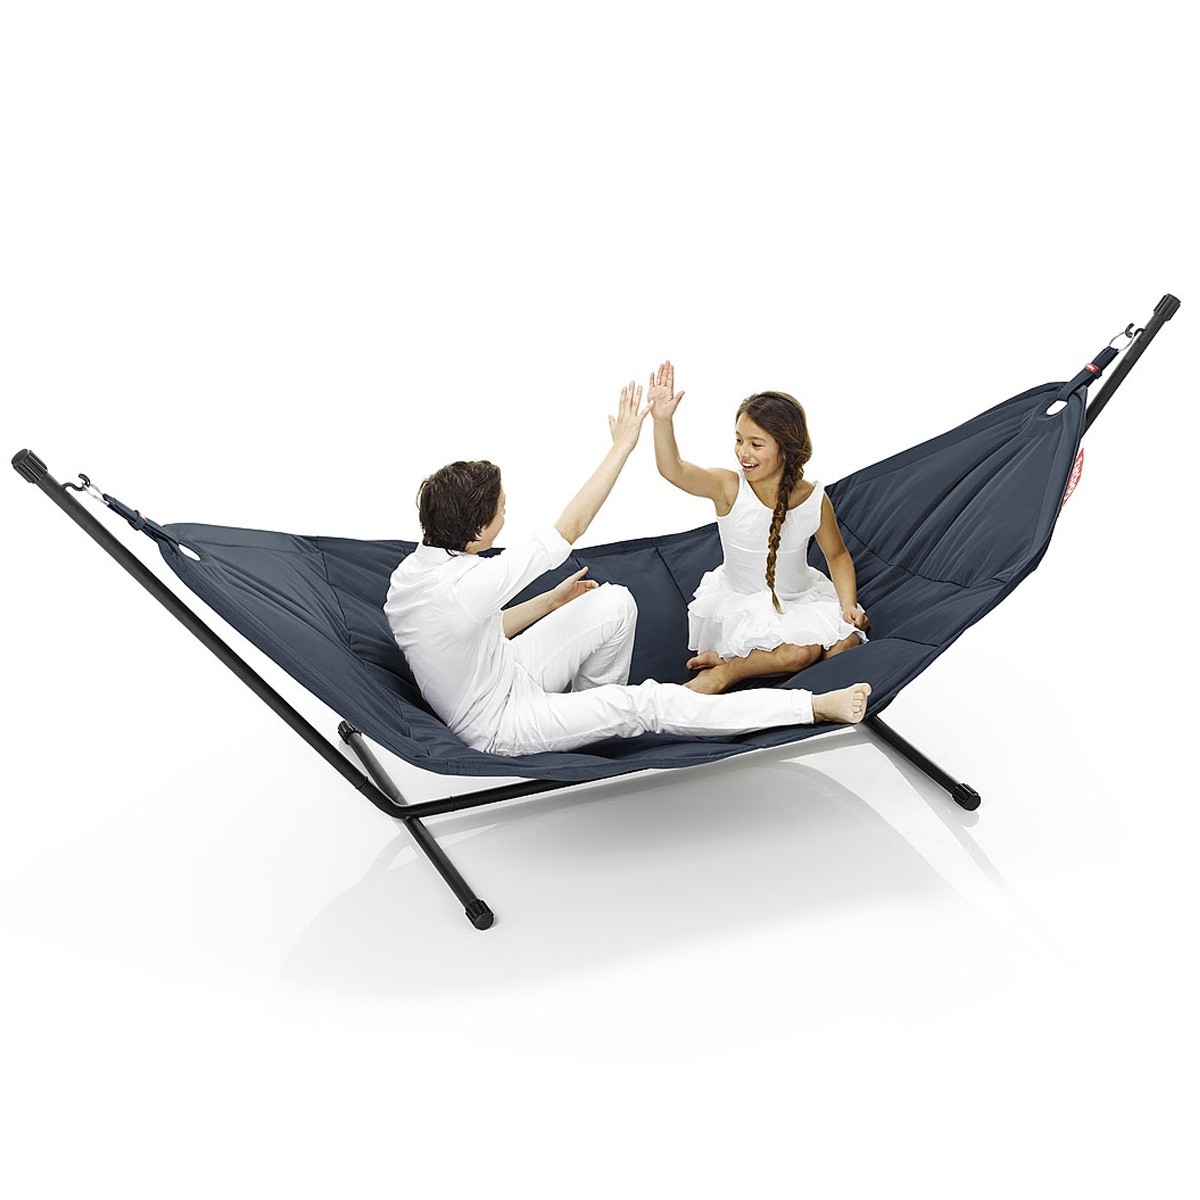 iconic design fatboy header beanbags lamzac hammock desk seating and gb sustainable by quality en beach